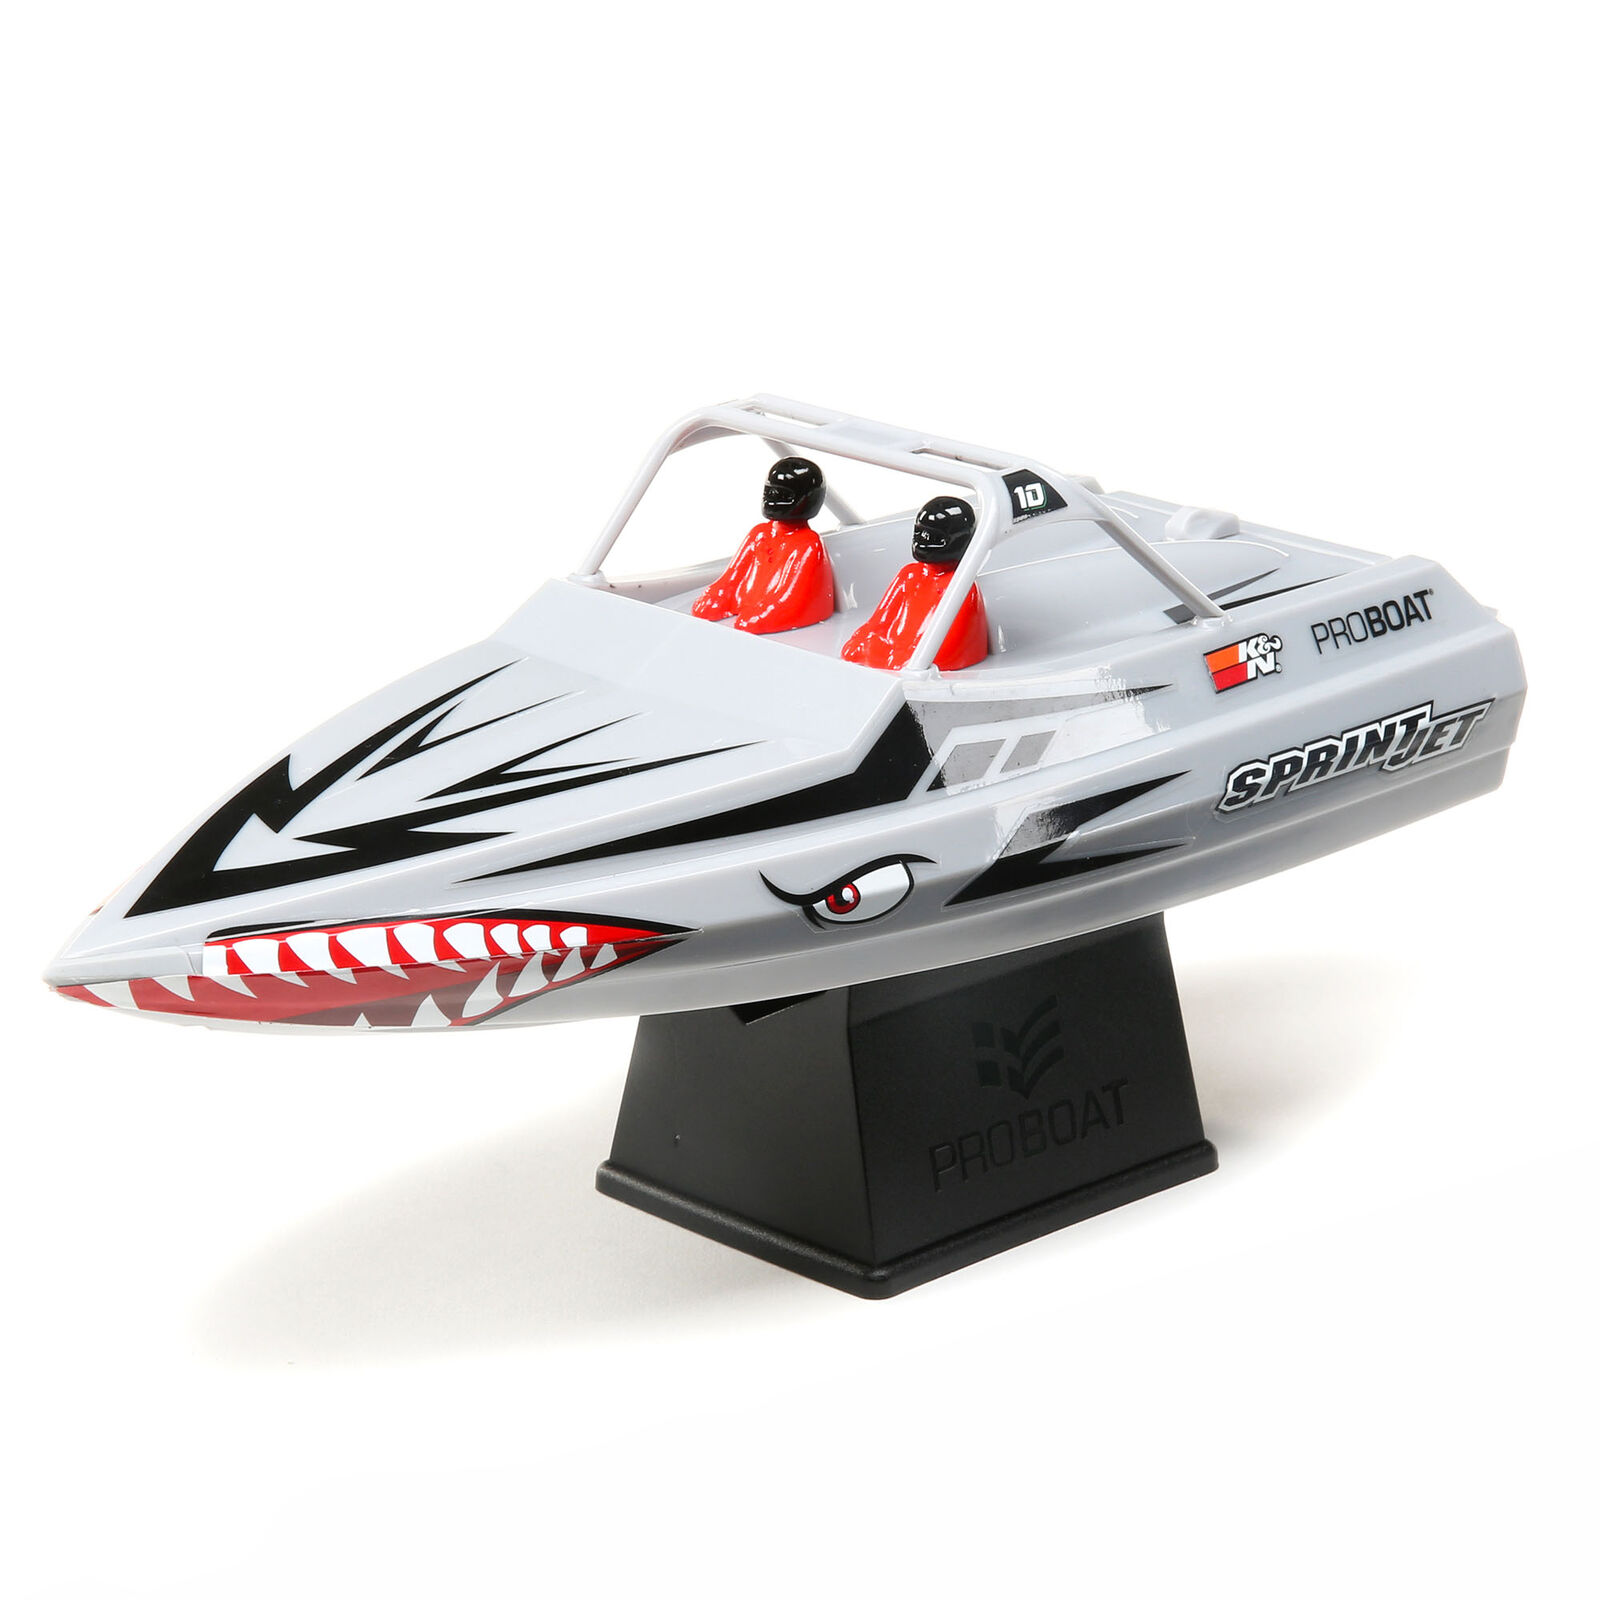 "Sprintjet 9"" Self-Righting Jet Boat Brushed RTR, Silver"